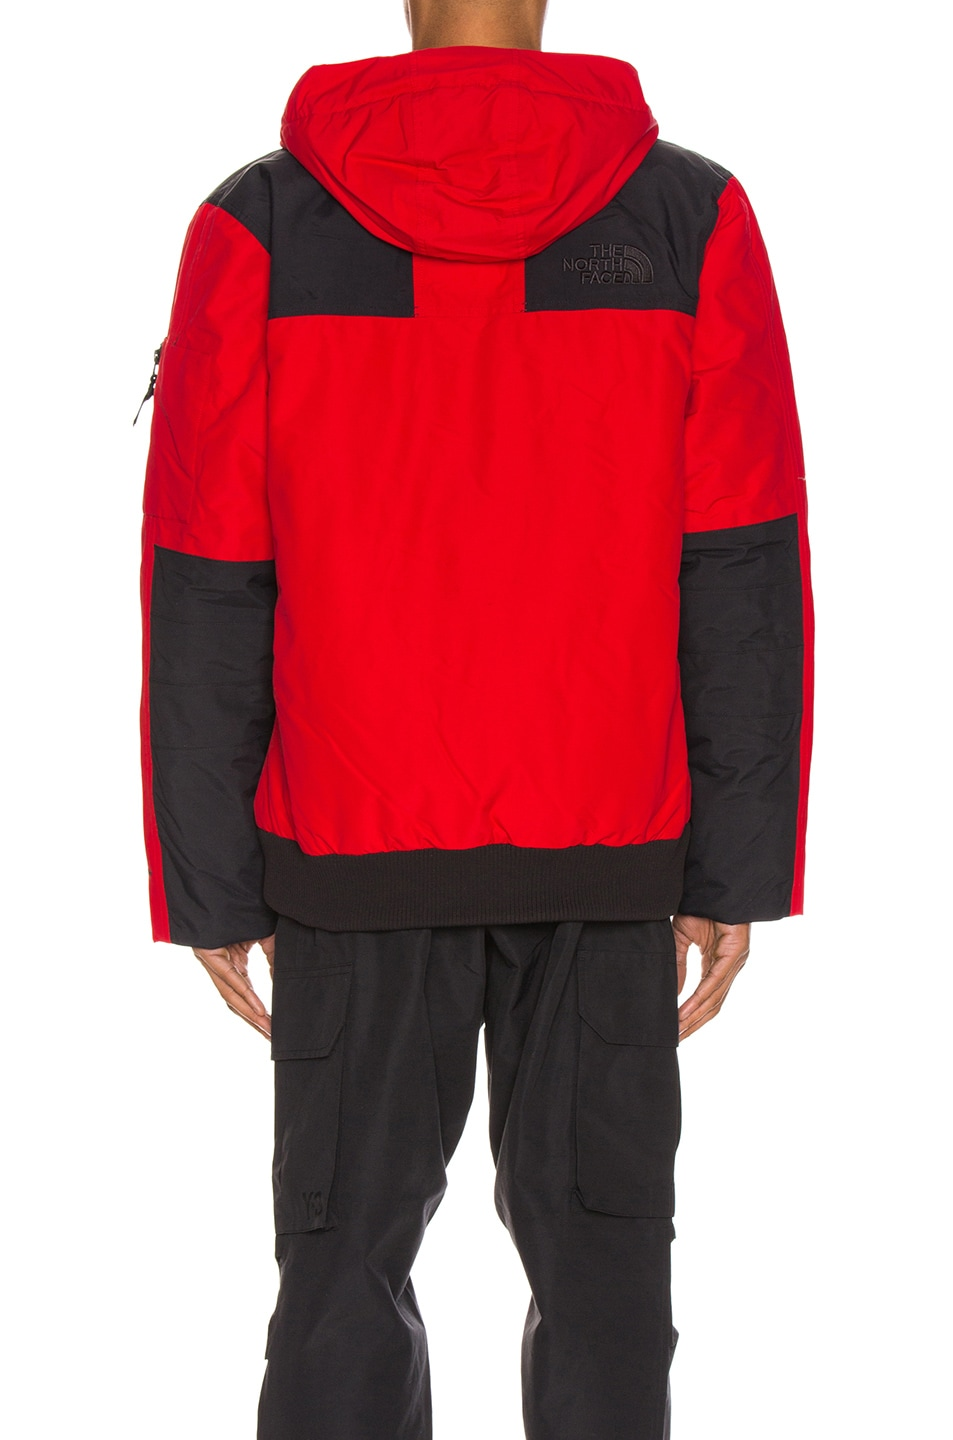 Image 5 of The North Face Newington Jacket in TNF Red